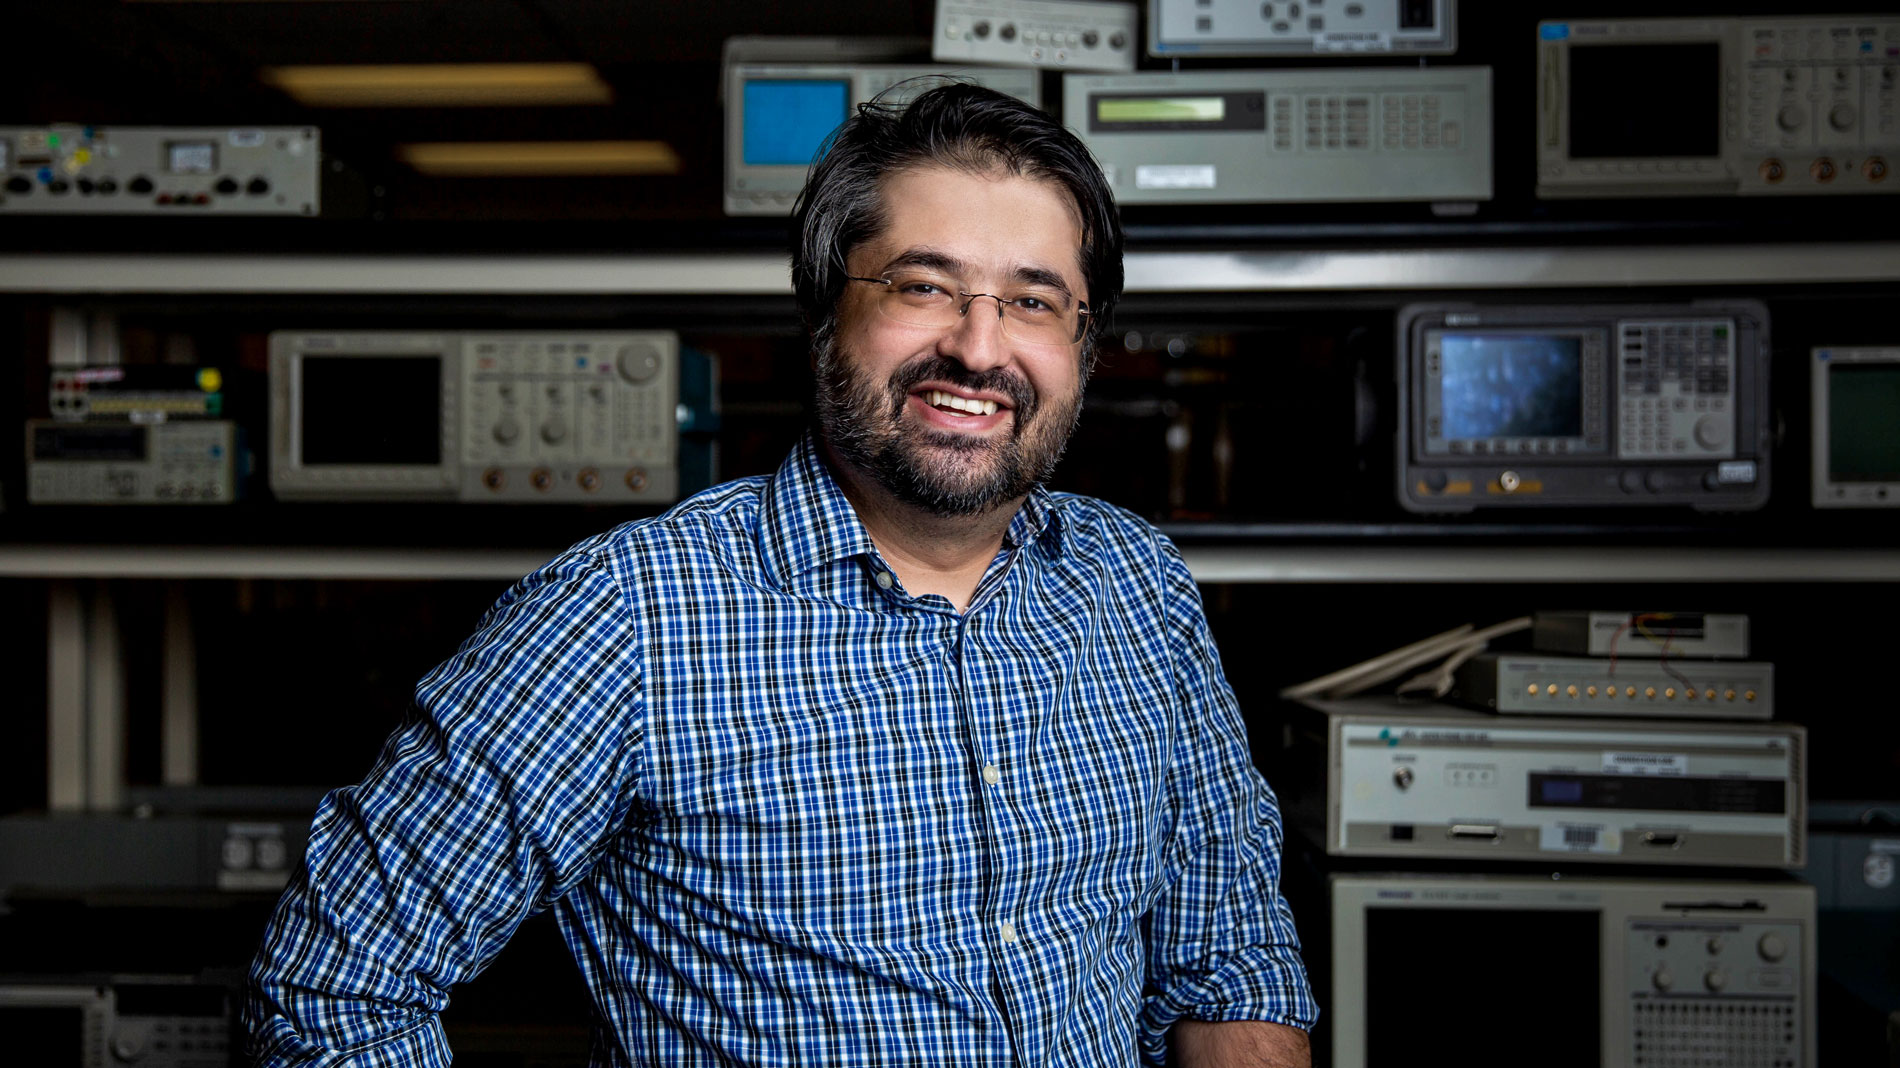 A portrait of Mohammadreza Imani, an assistant professor of electrical engineering in the Ira A. Fulton Schools of Engineering at Arizona State University.